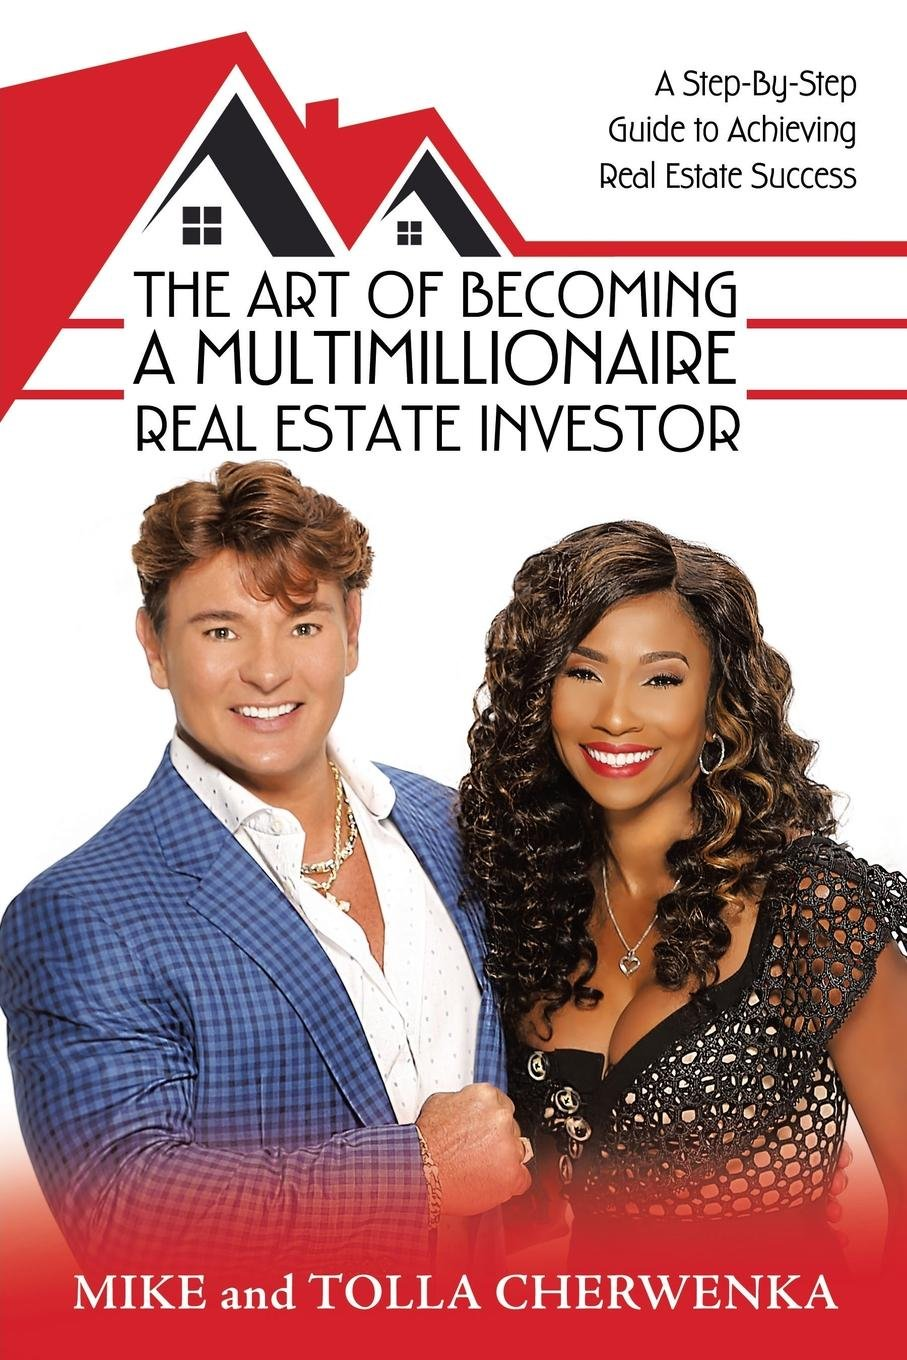 Download The Art of Becoming a Multimillionaire Real Estate Investor: A Step-By-Step Guide to Achieving Real Estate Success ebook